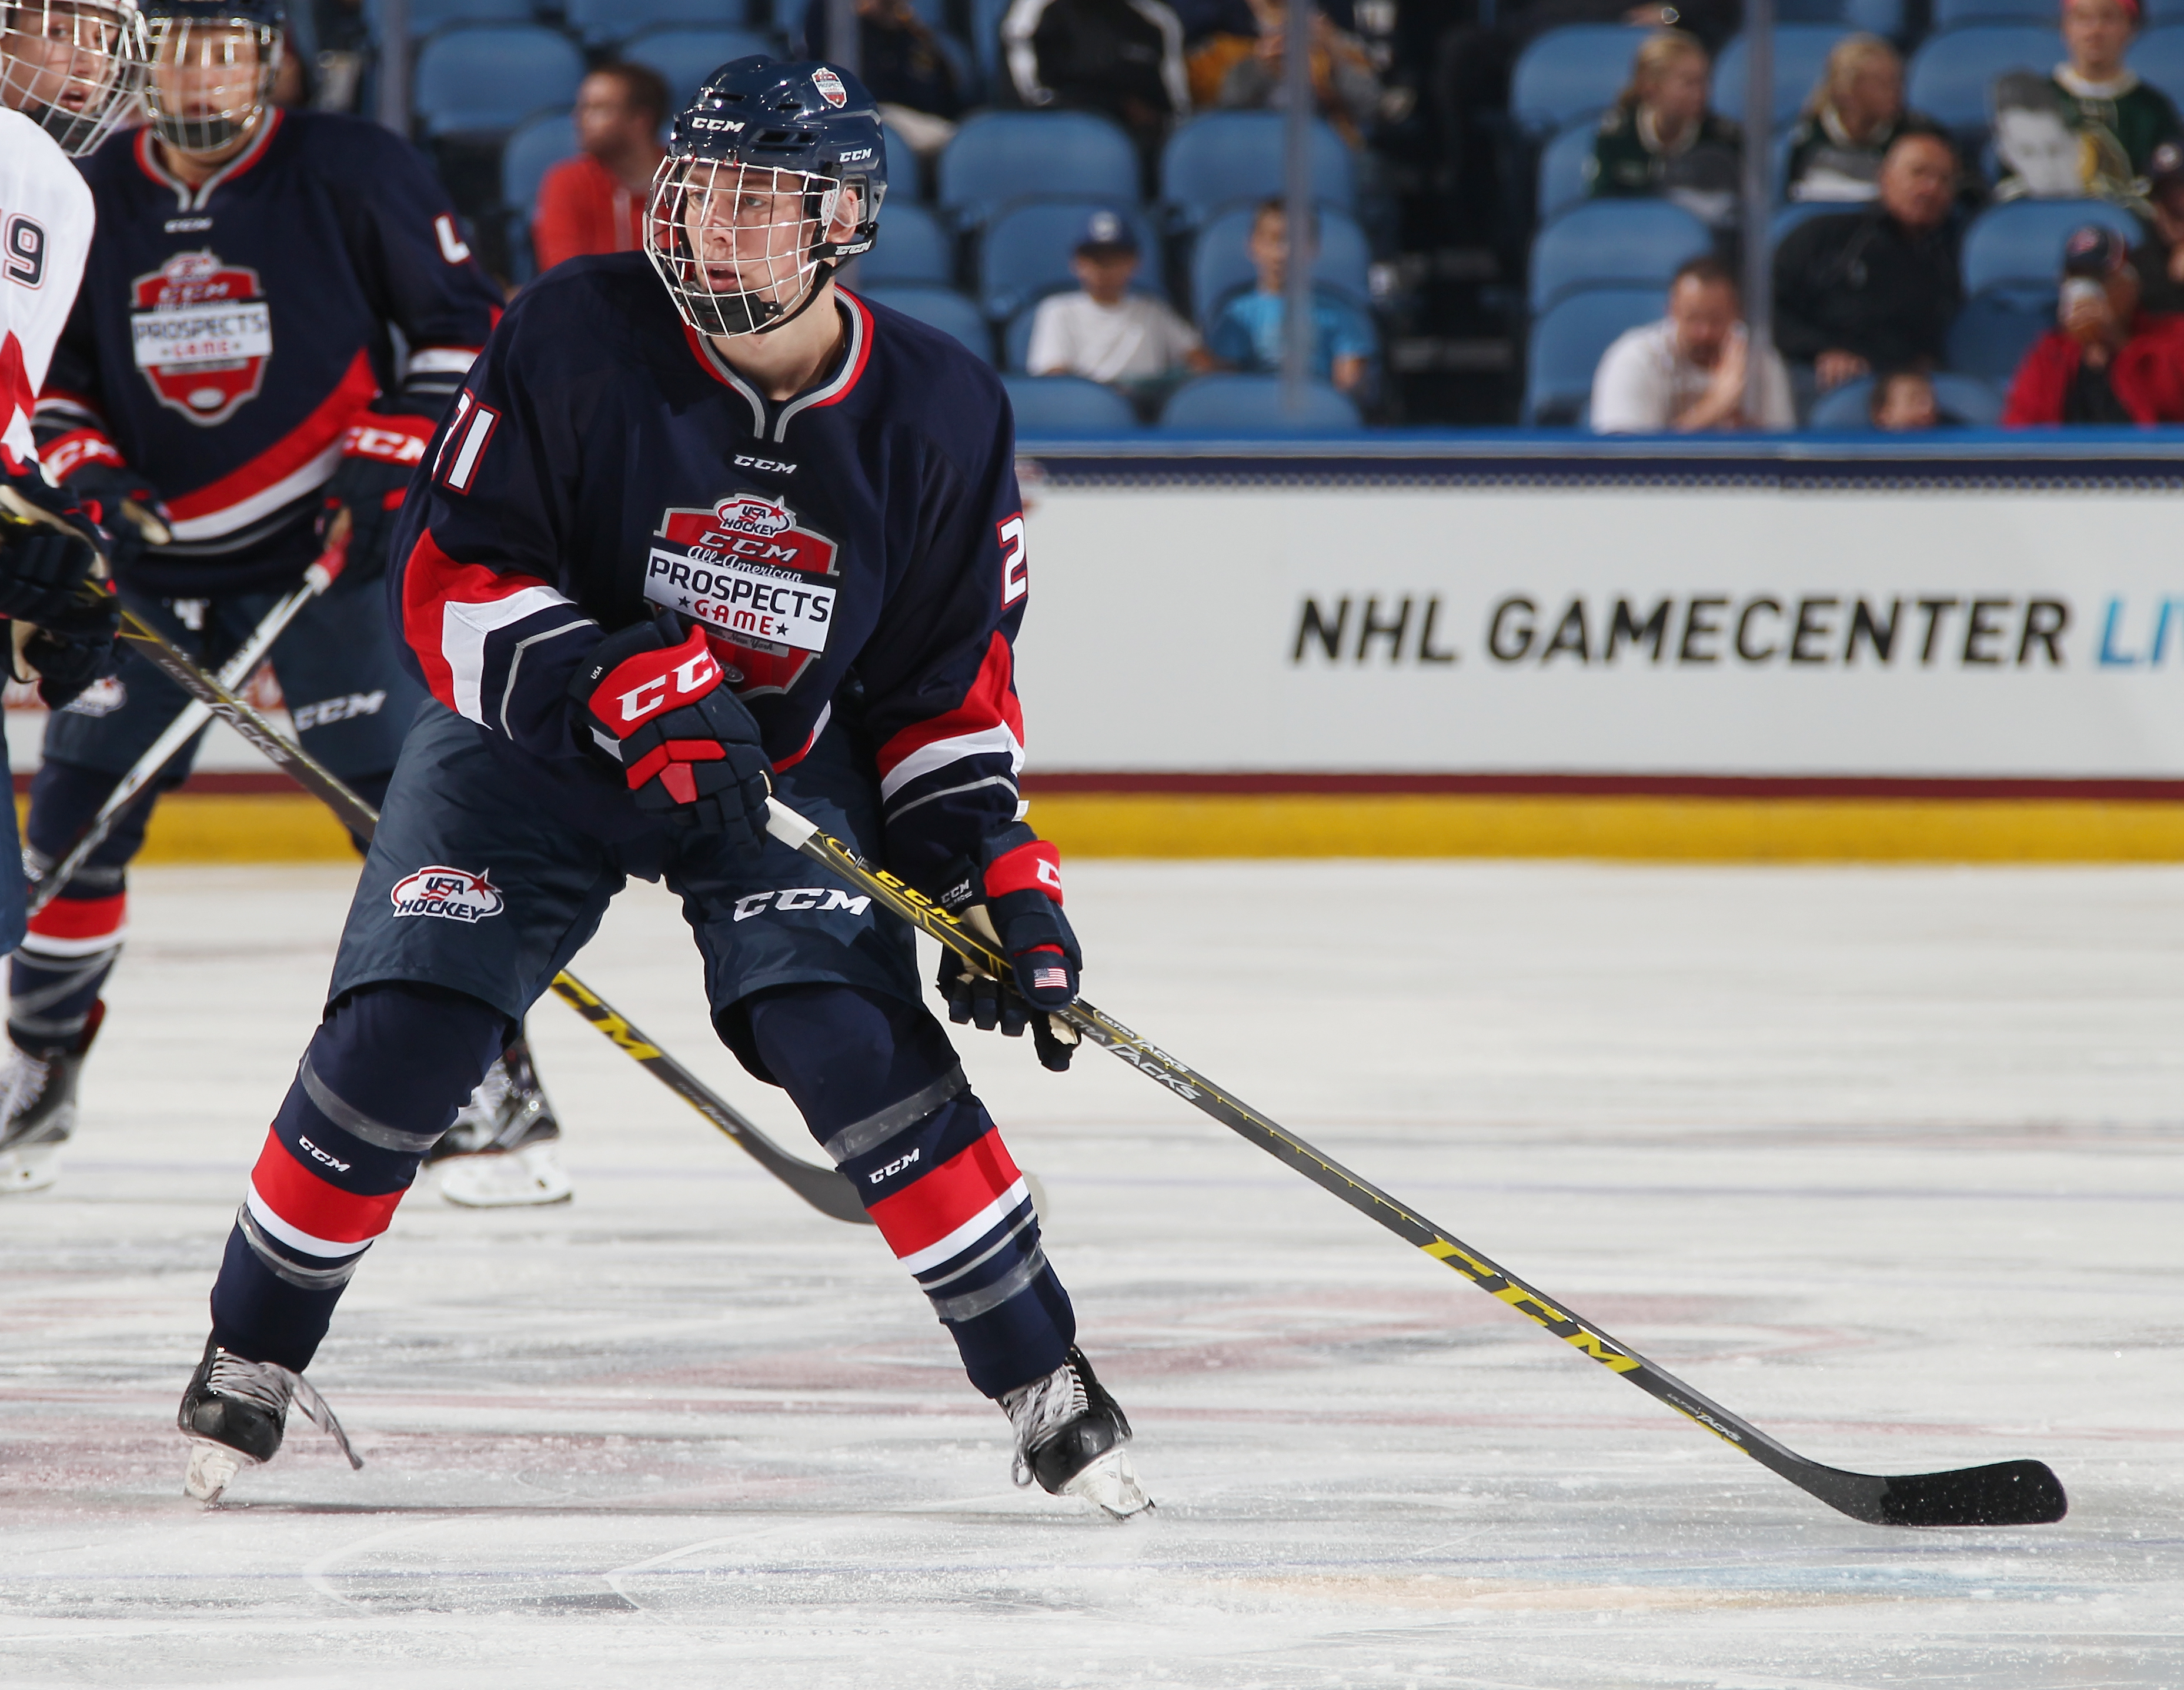 USHL: 2016 League/NHL Top Prospects Game